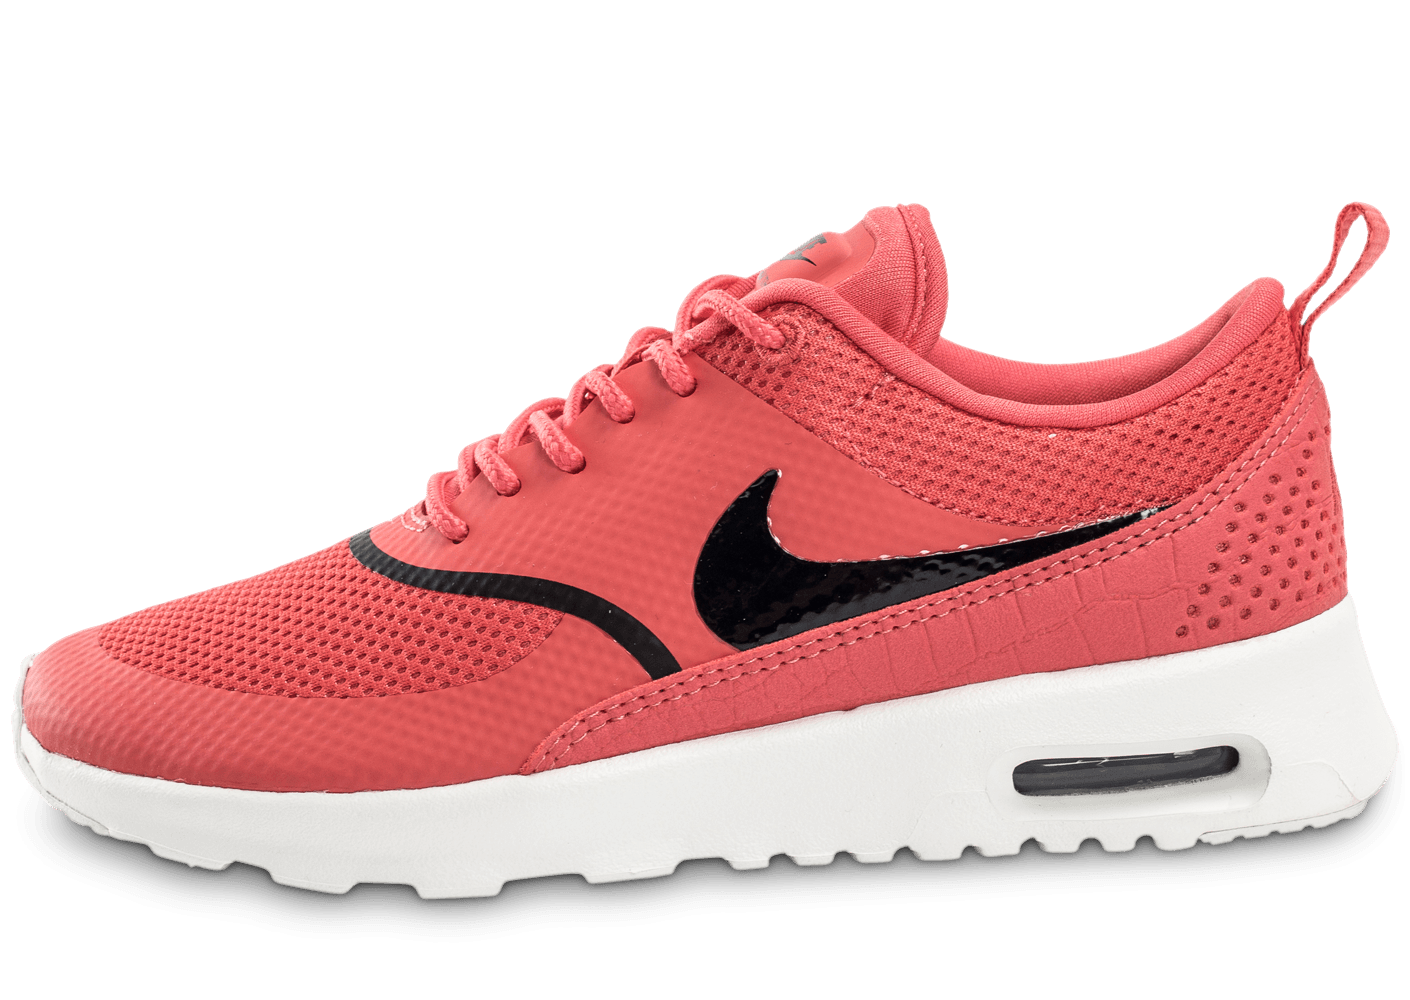 nike air max thea femme corail. Black Bedroom Furniture Sets. Home Design Ideas